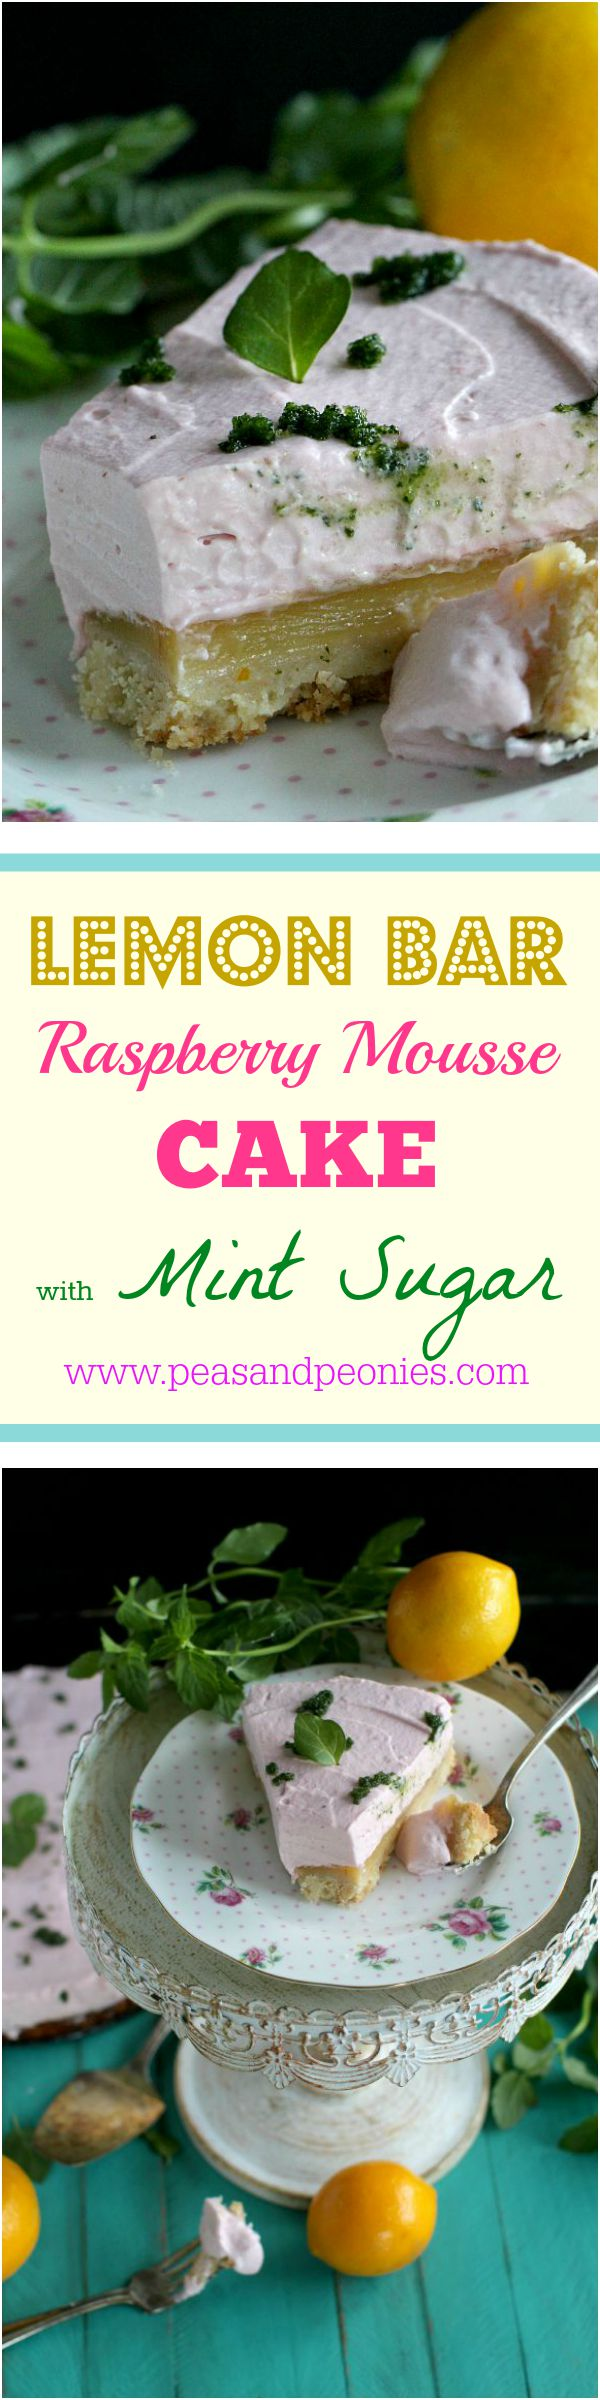 Lemon Bar Raspberry Mousse Cake with Mint Sugar - Peas and Peonies #lemonbars #lemoncake #mousse #raspberry